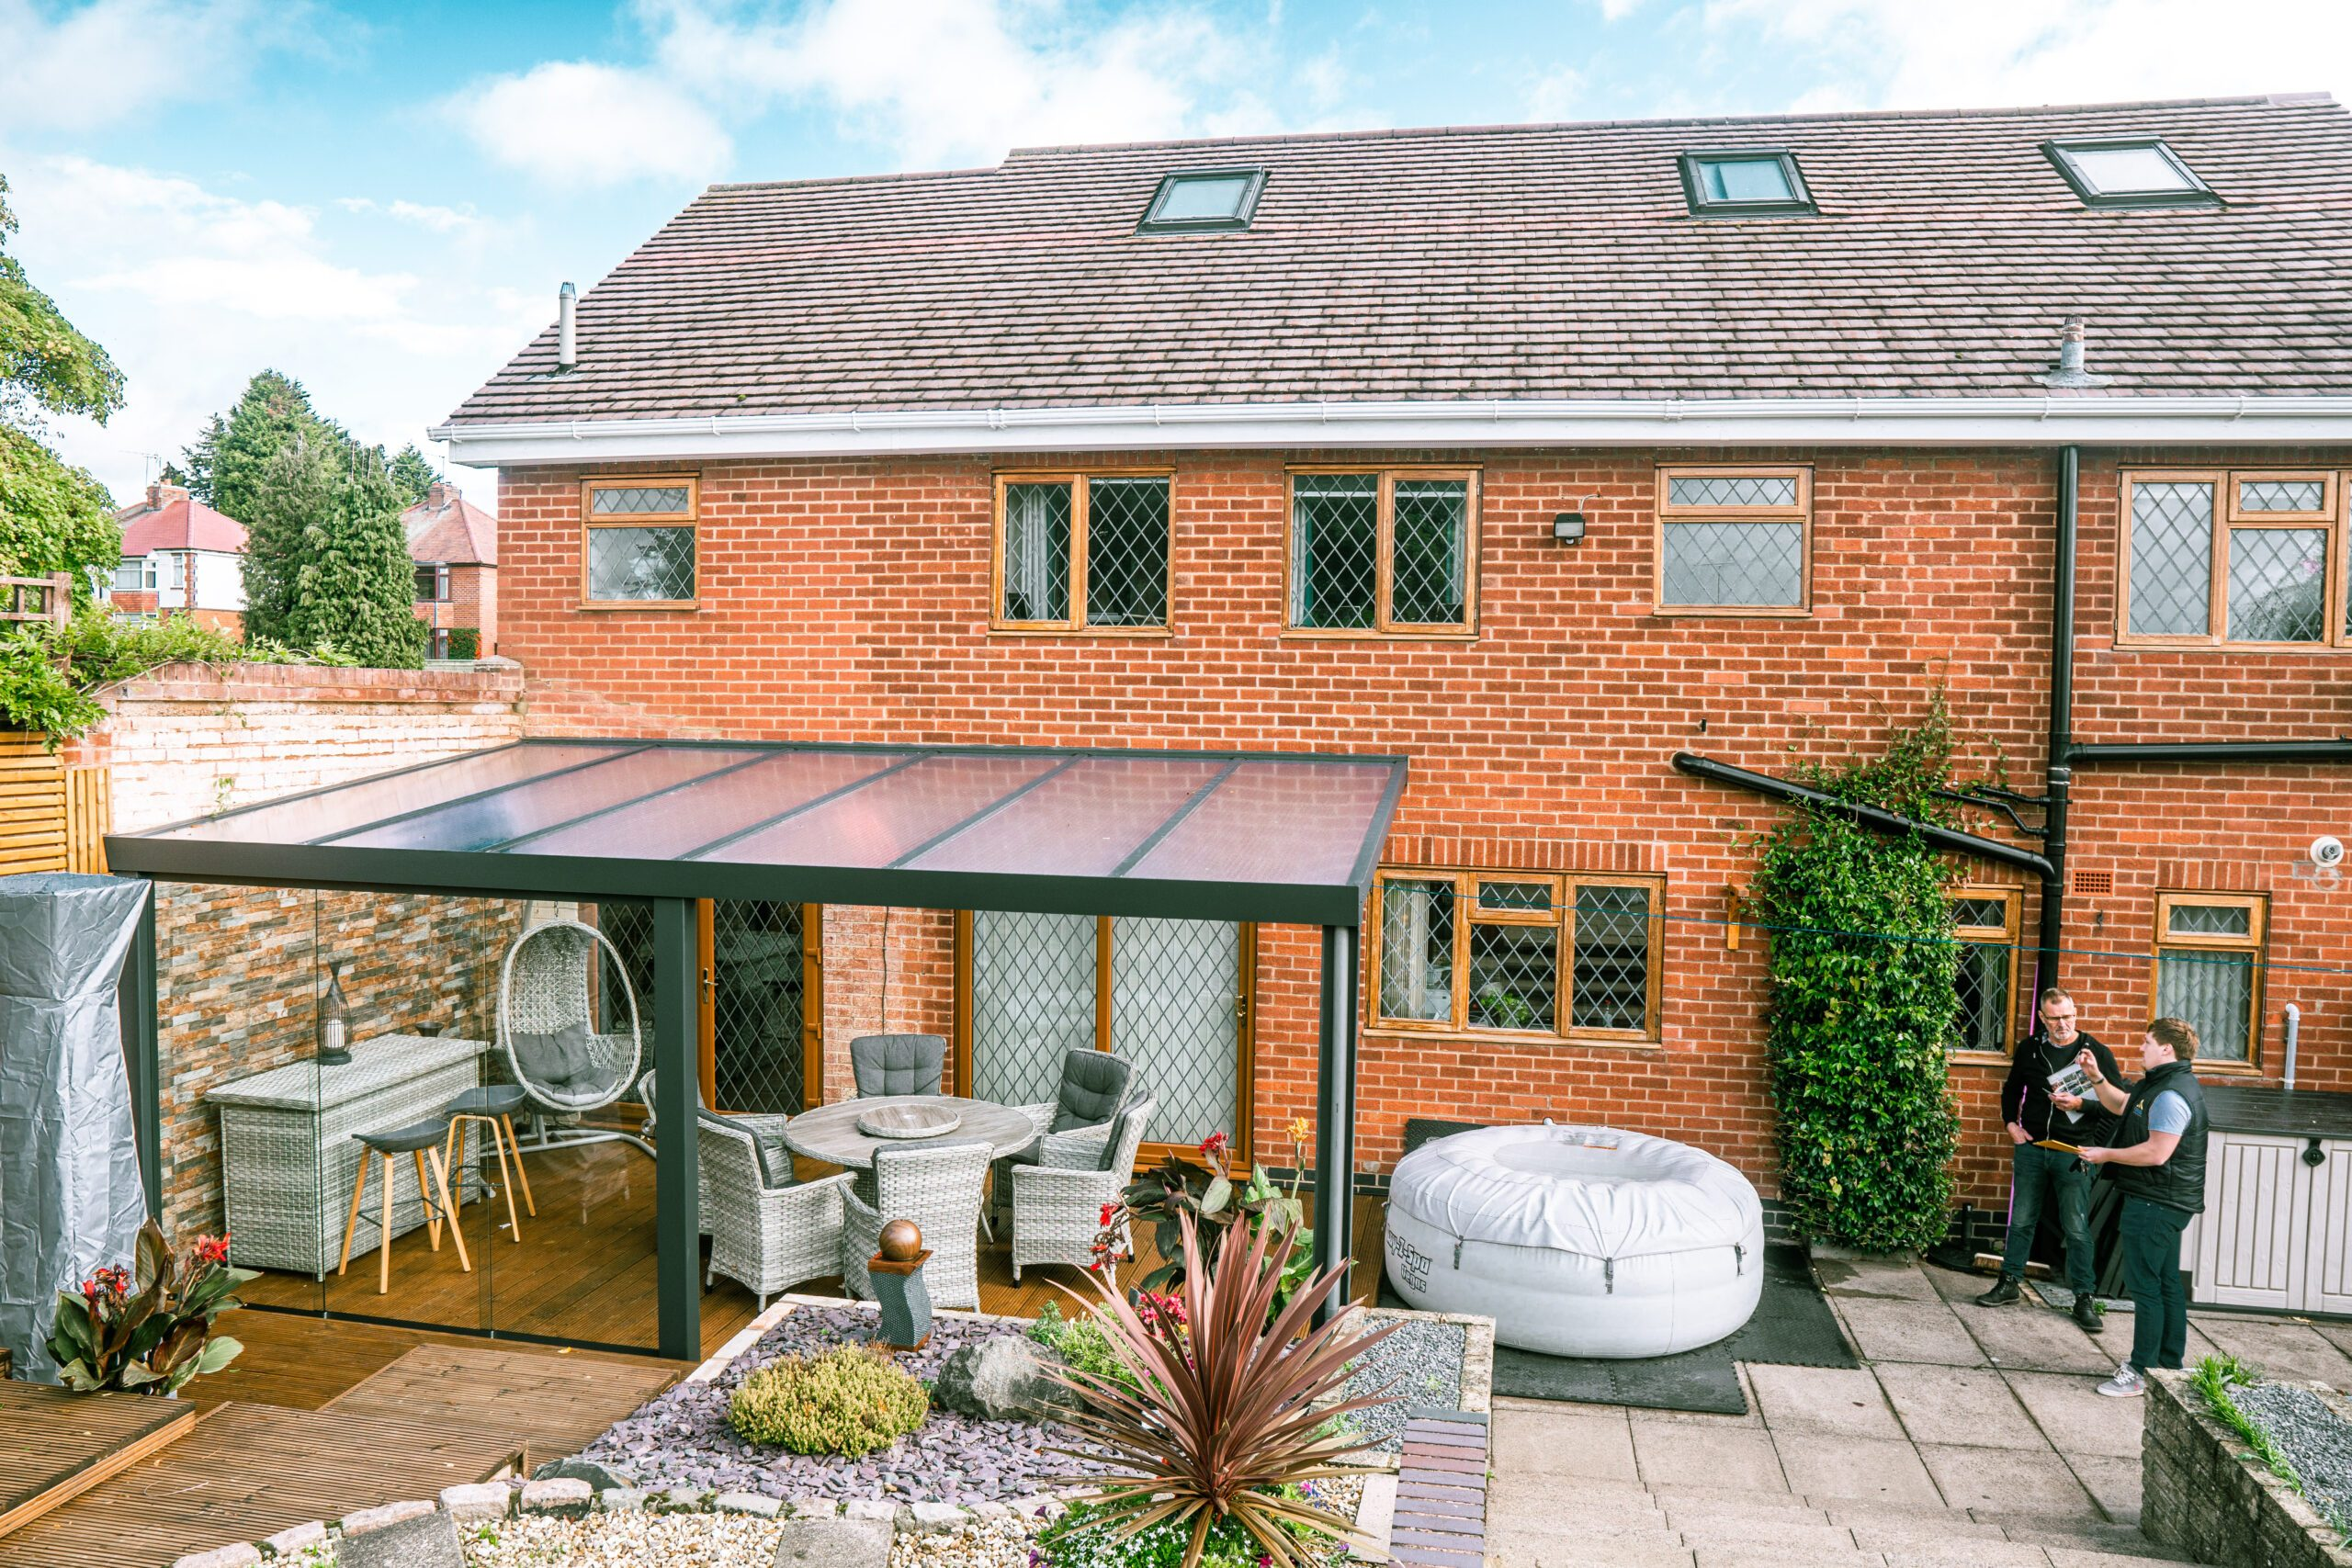 5 reasons why a lean-to veranda is the right choice for your home